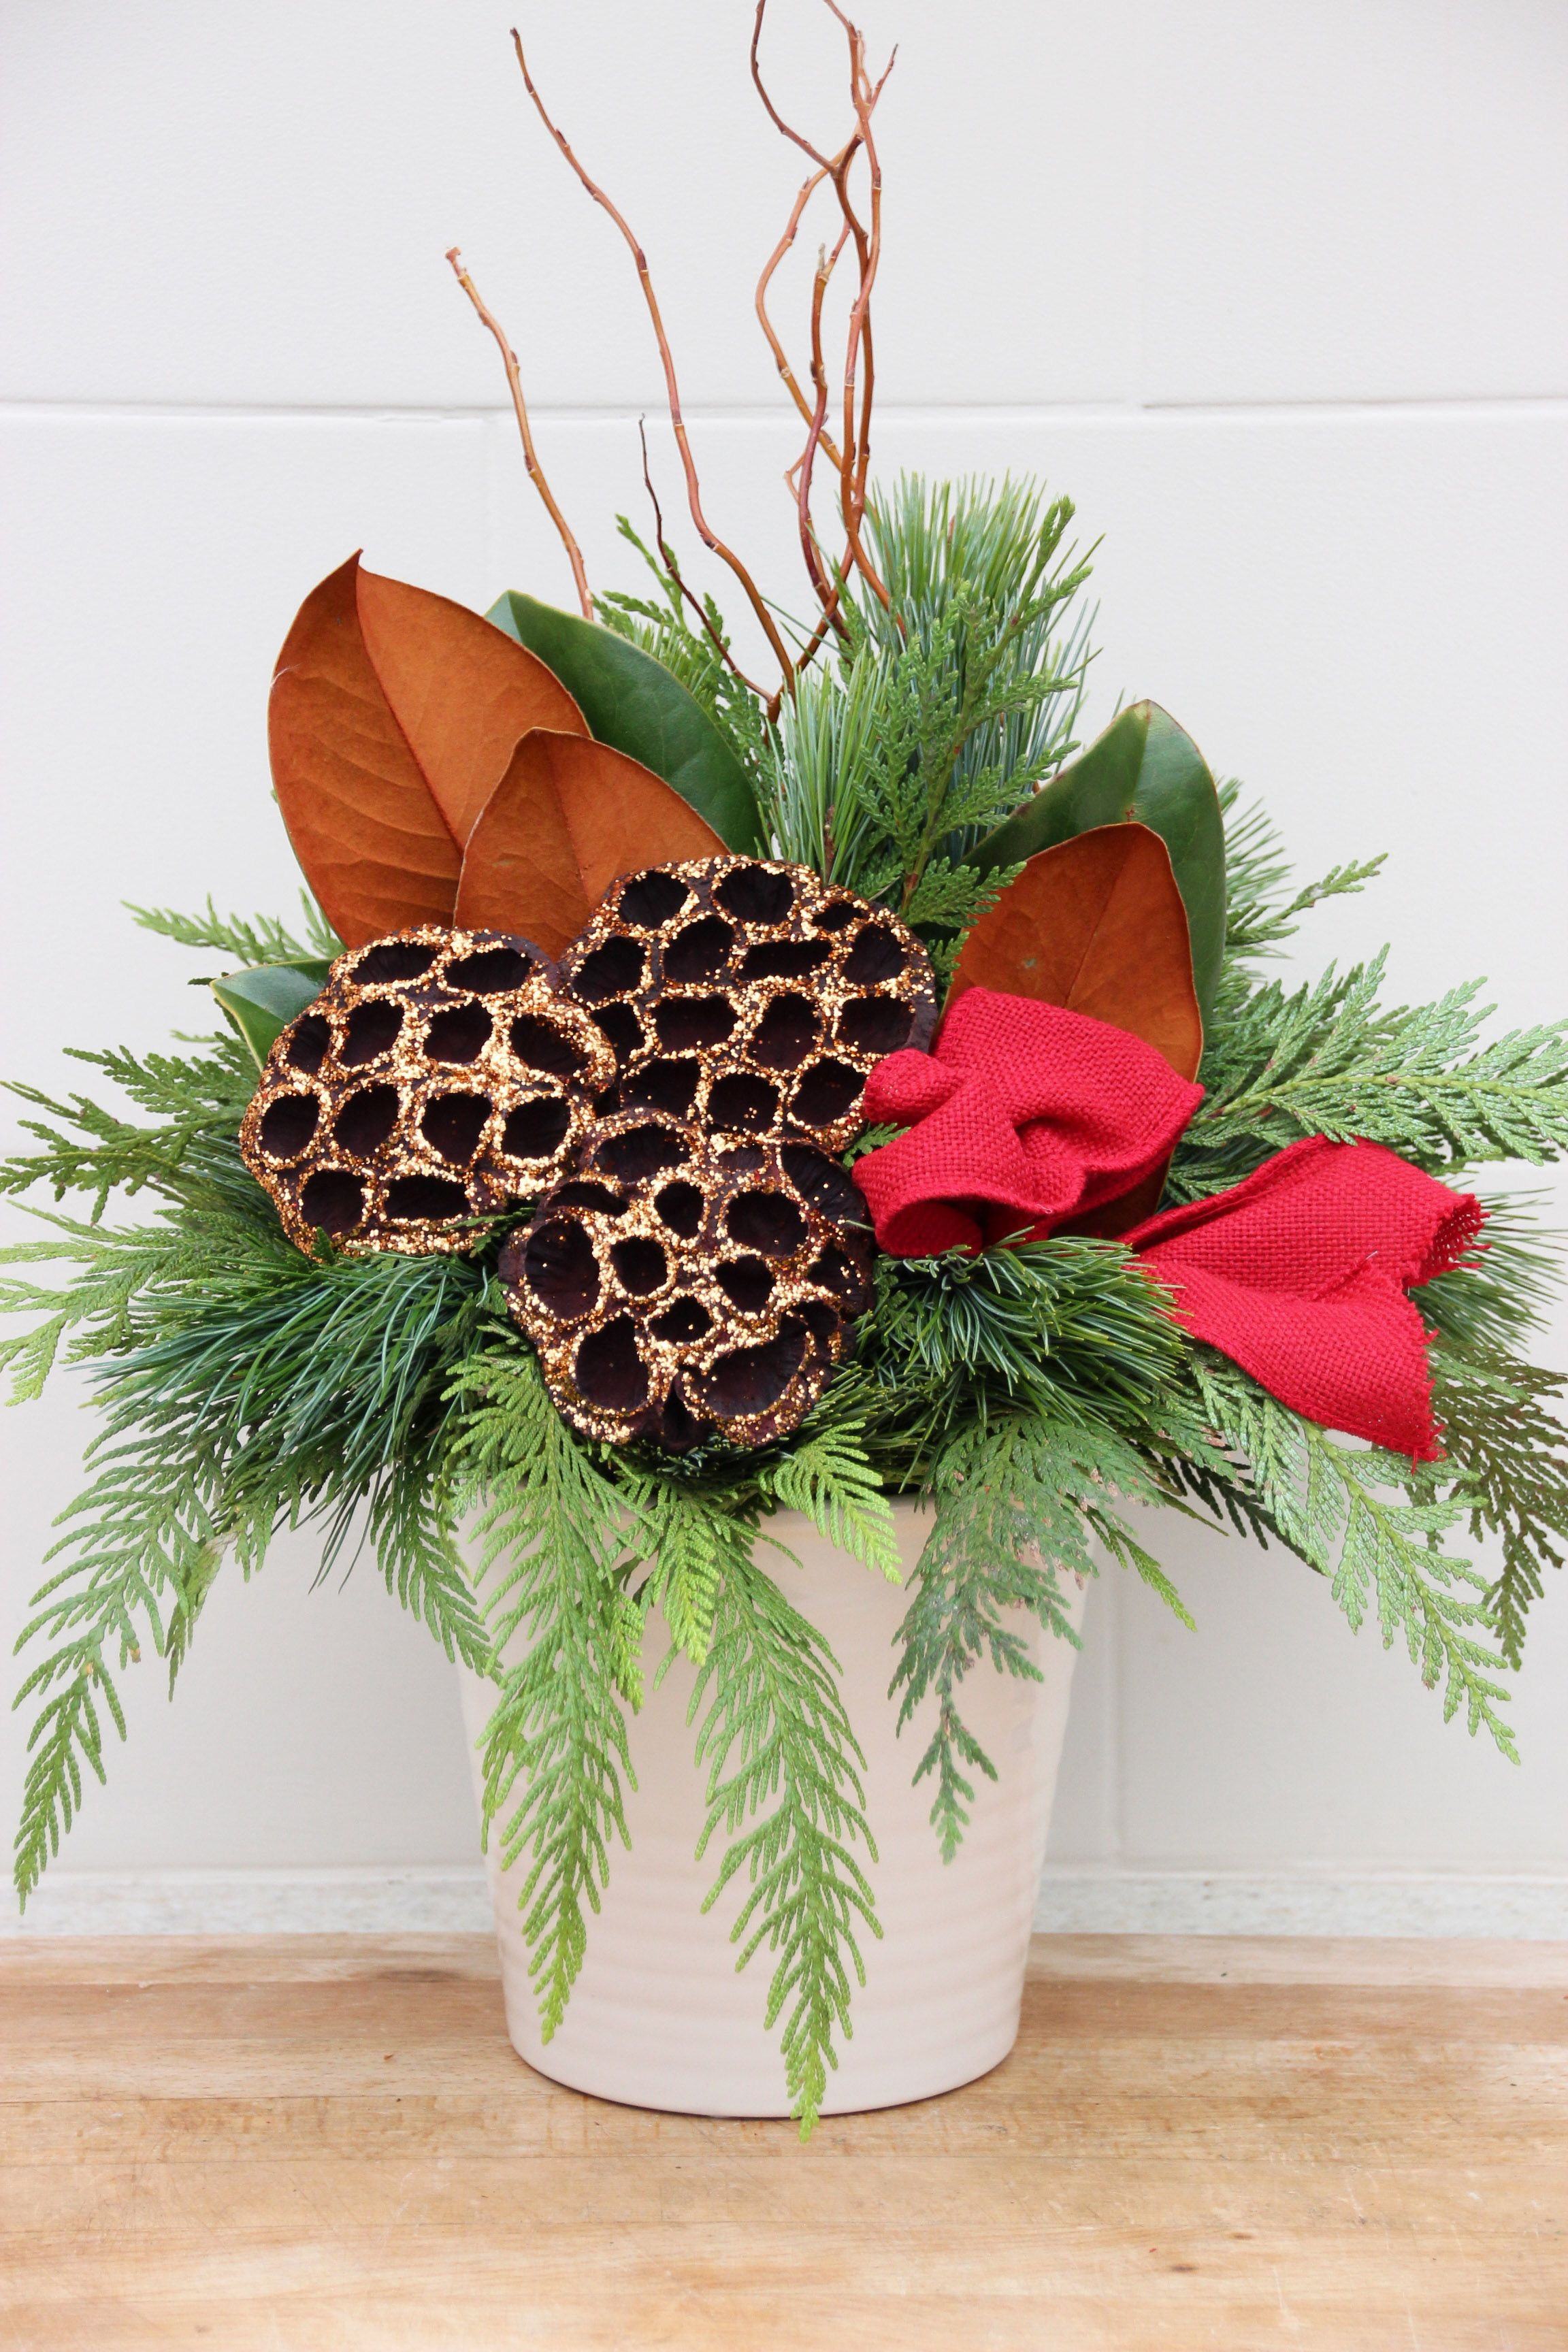 Indoor evergreen arrangement for the Christmas season